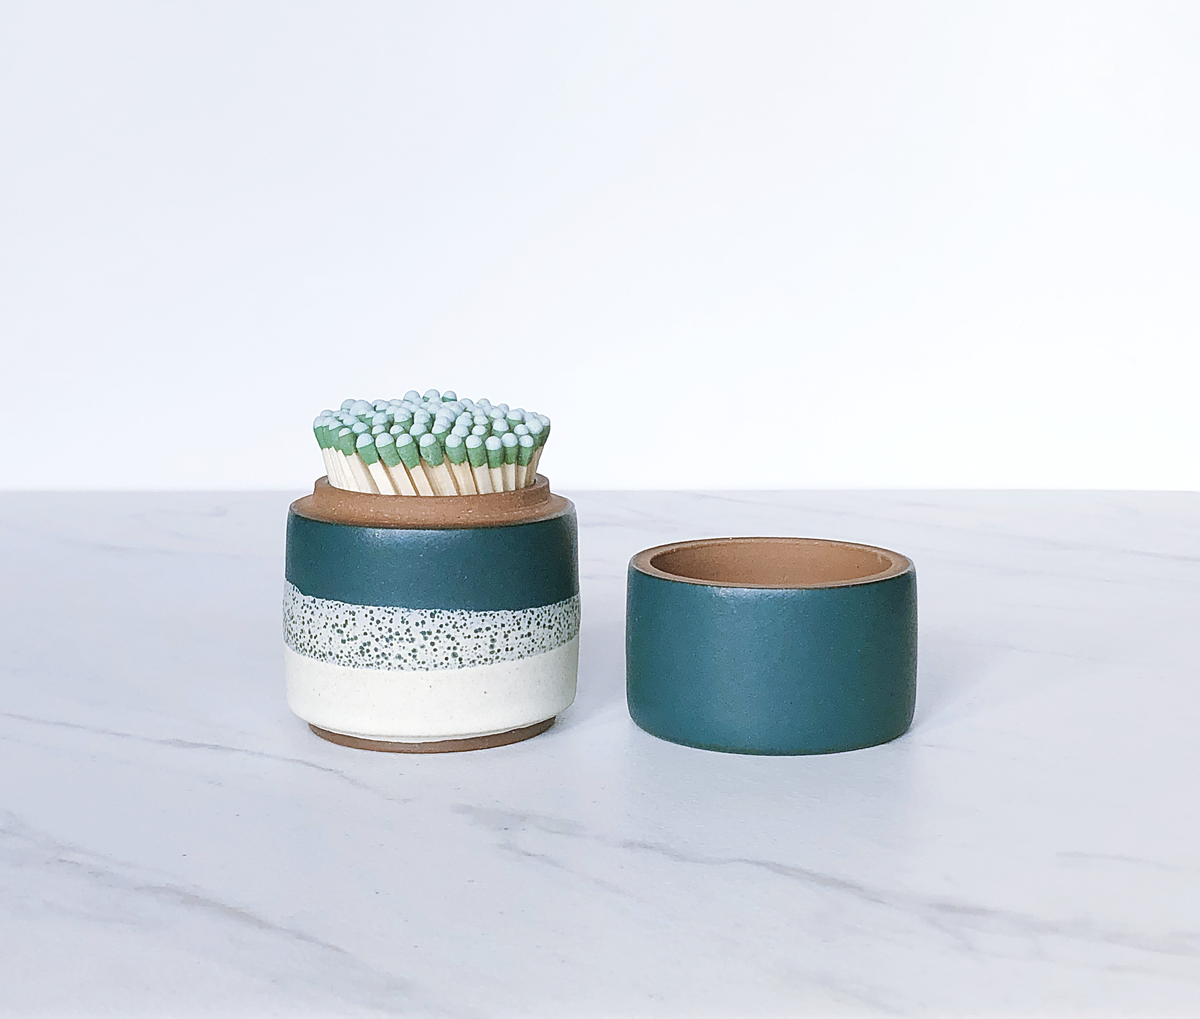 Image of Ceramic match holder with lid, glazed in matte teal + cream